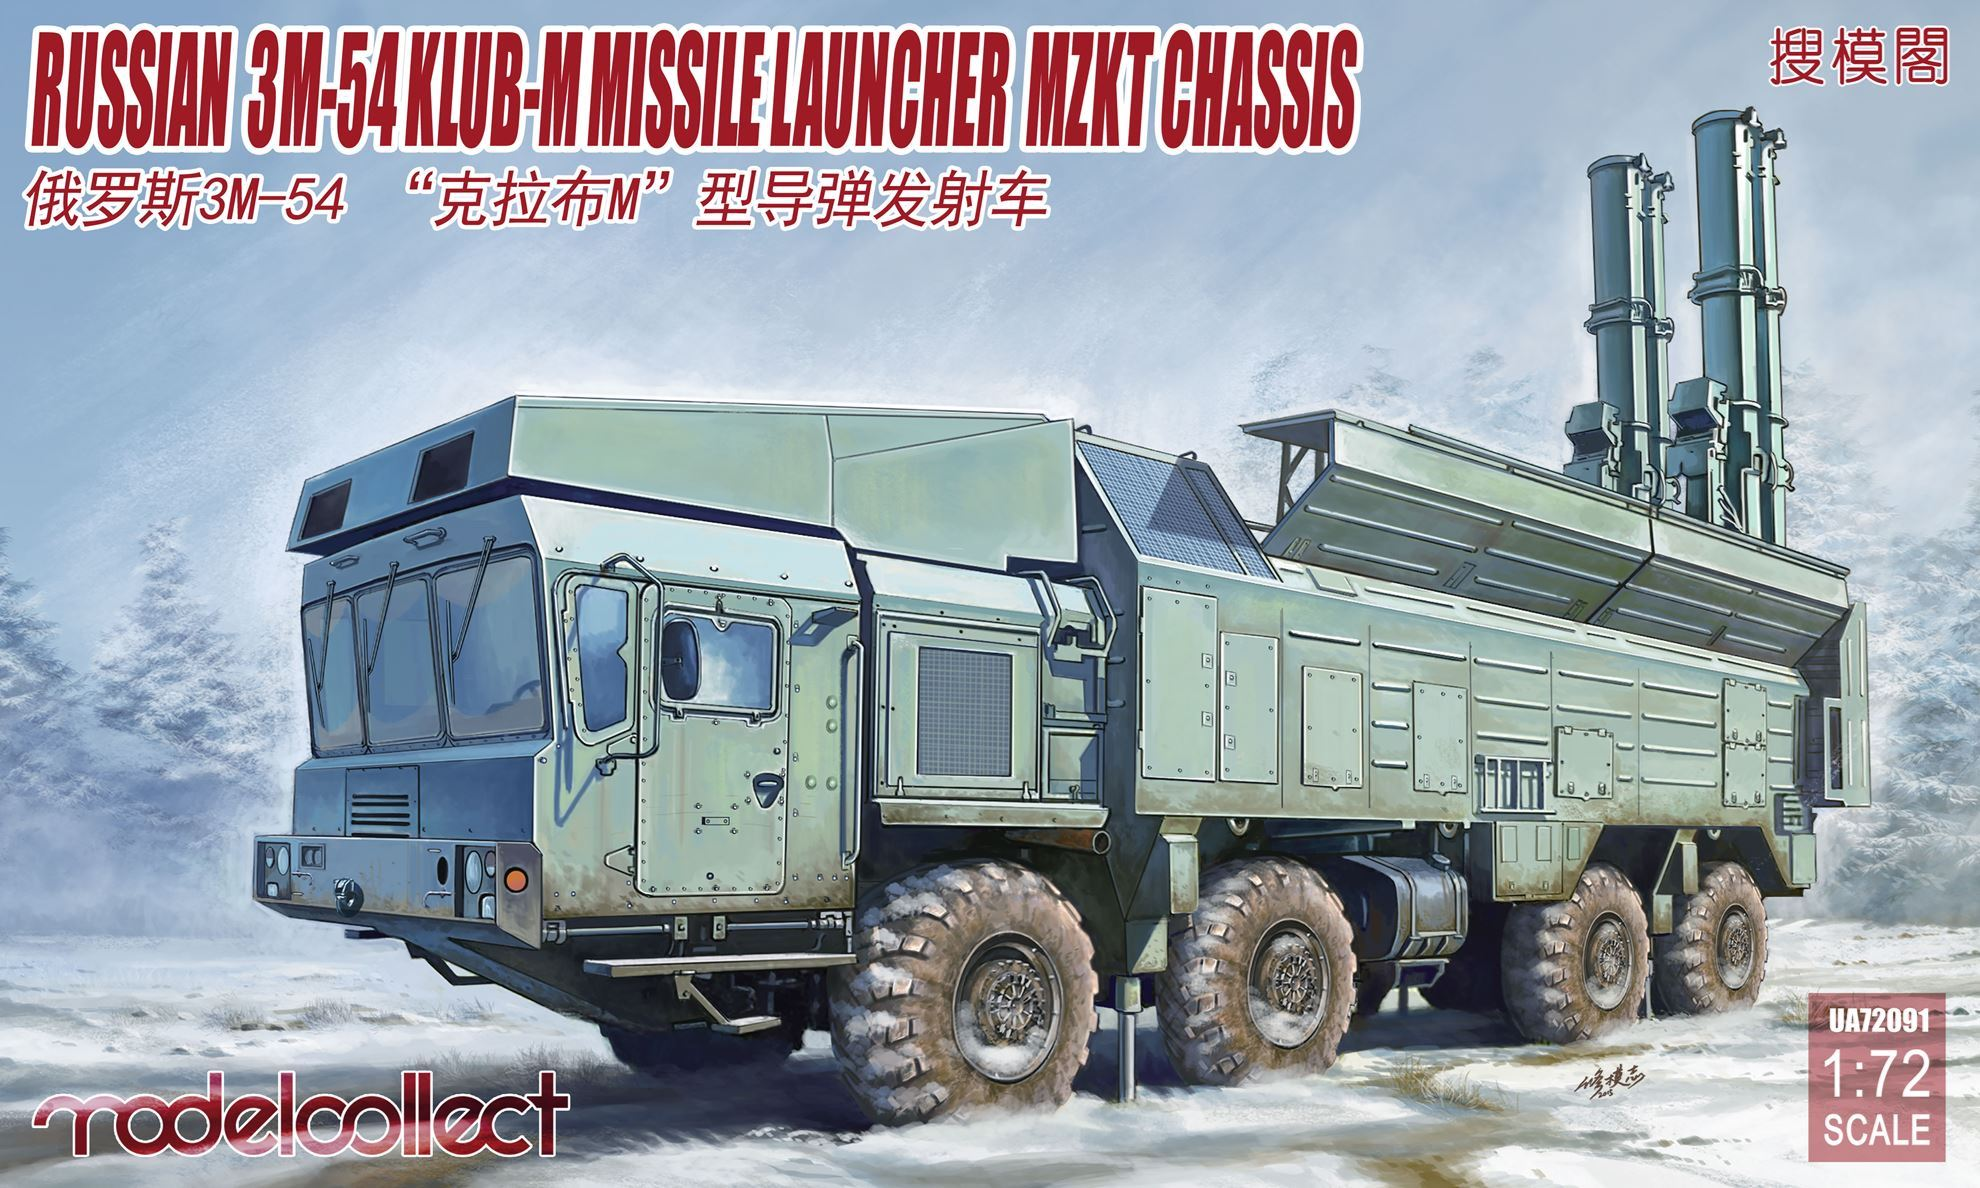 "ModelCollect Russian 3M-54 ""Caliber(CLUB)-M"" Coastal Defense Missile Launcher Mzkt chassis"